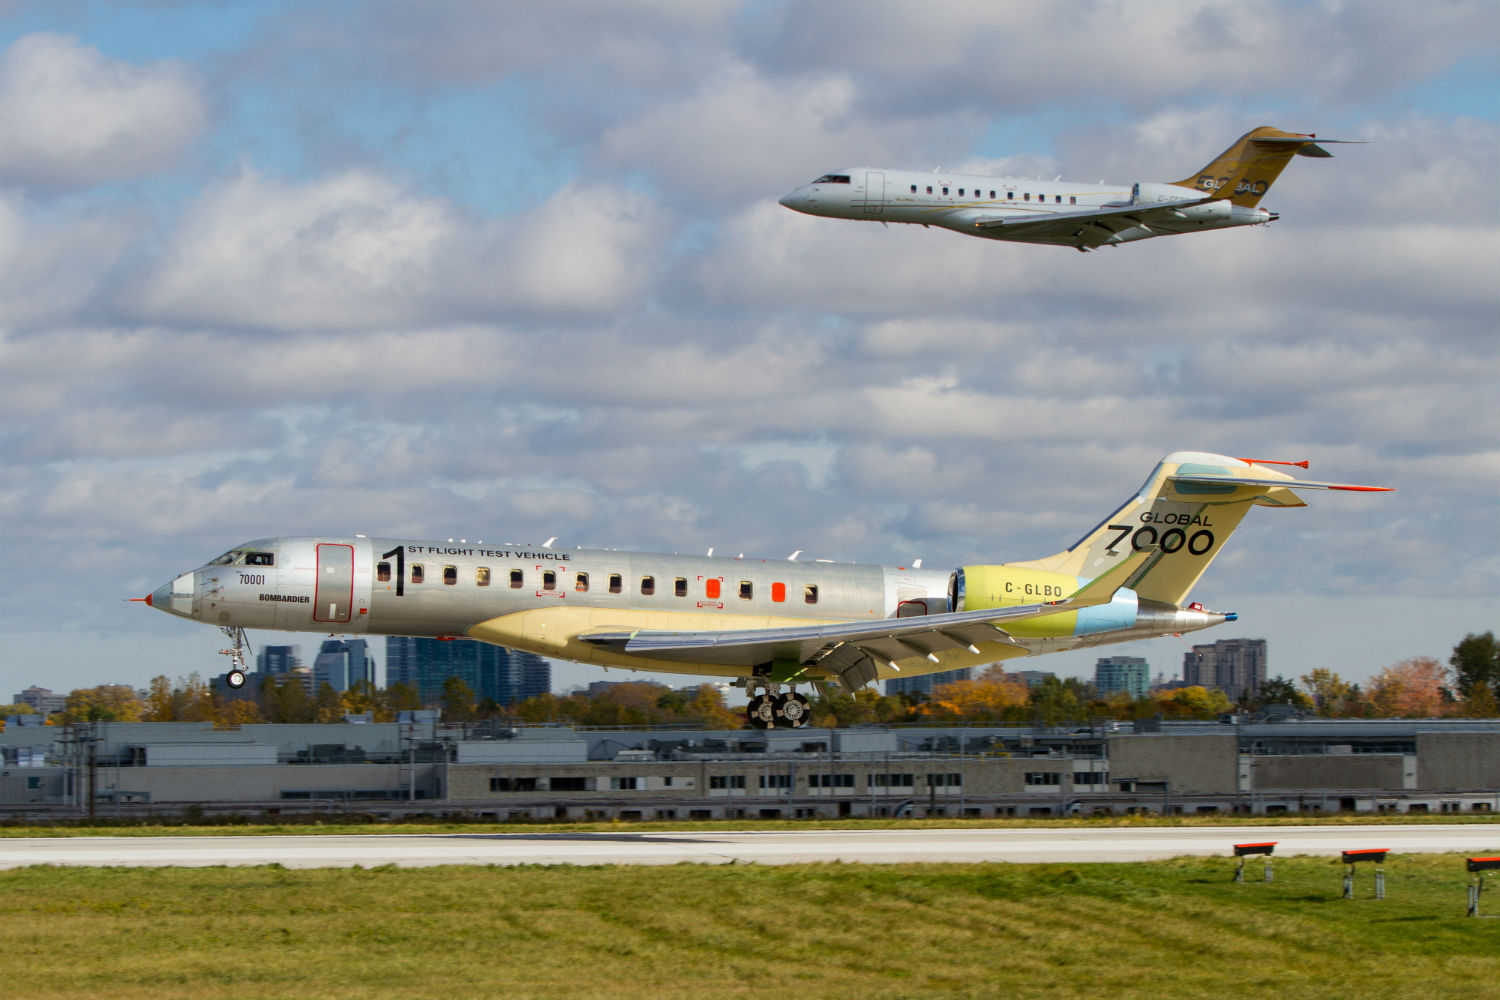 Two business jets, one flying and one on the ground.